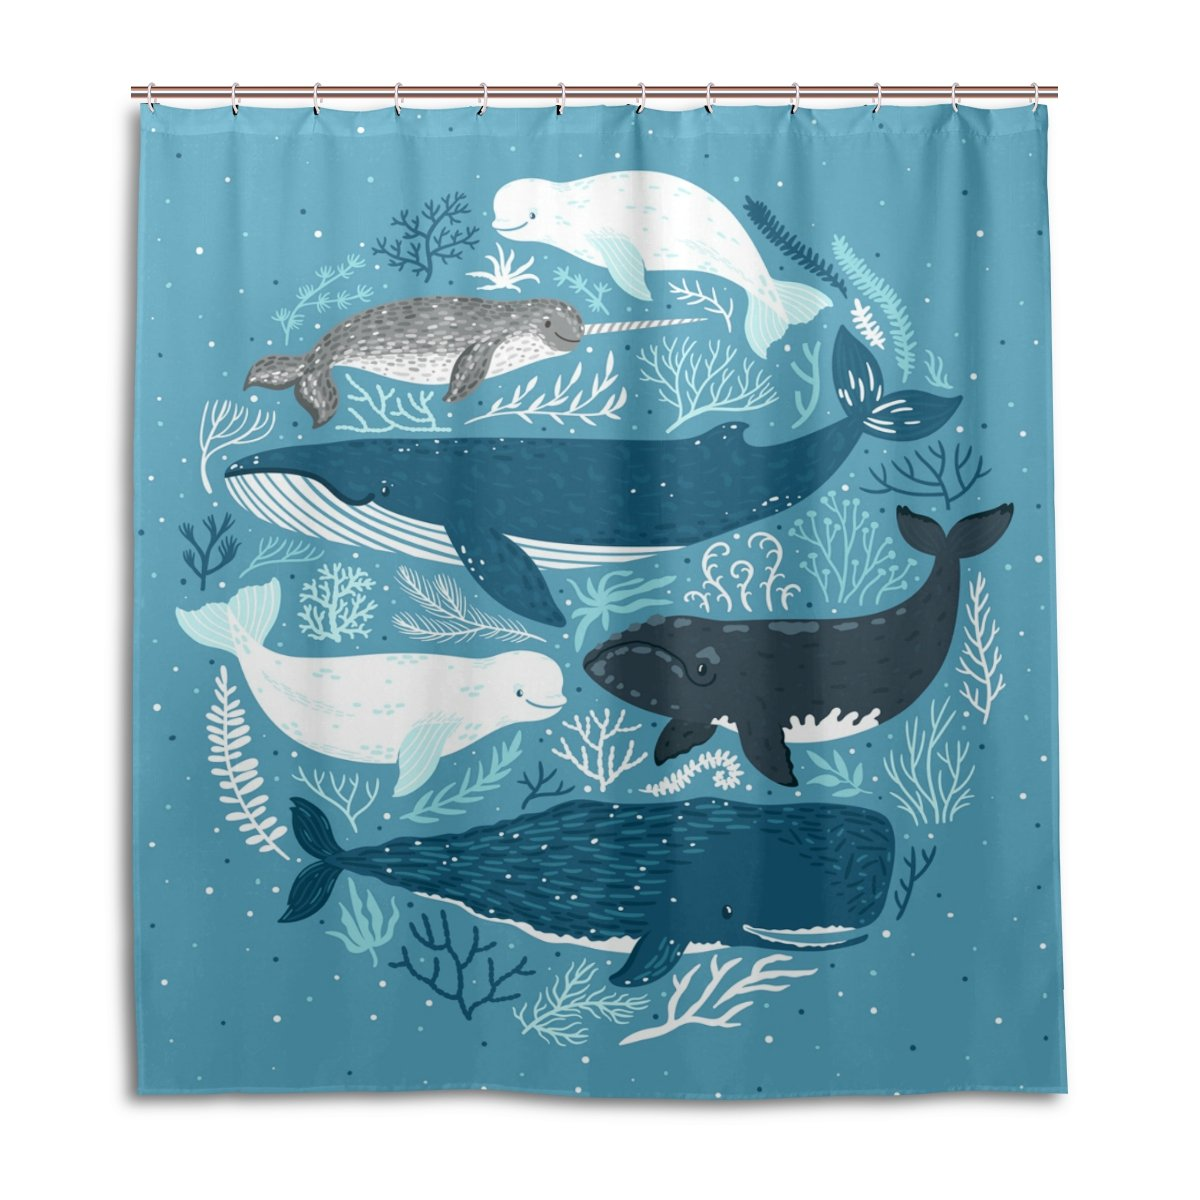 Whales Seals Dolphins Under The Sea Shower Curtain 66 X 72 inch Water Resistant Fabric Bath Curtain with Hooks for Bathroom Home Decor by Mock ST g1574657p64c44s62